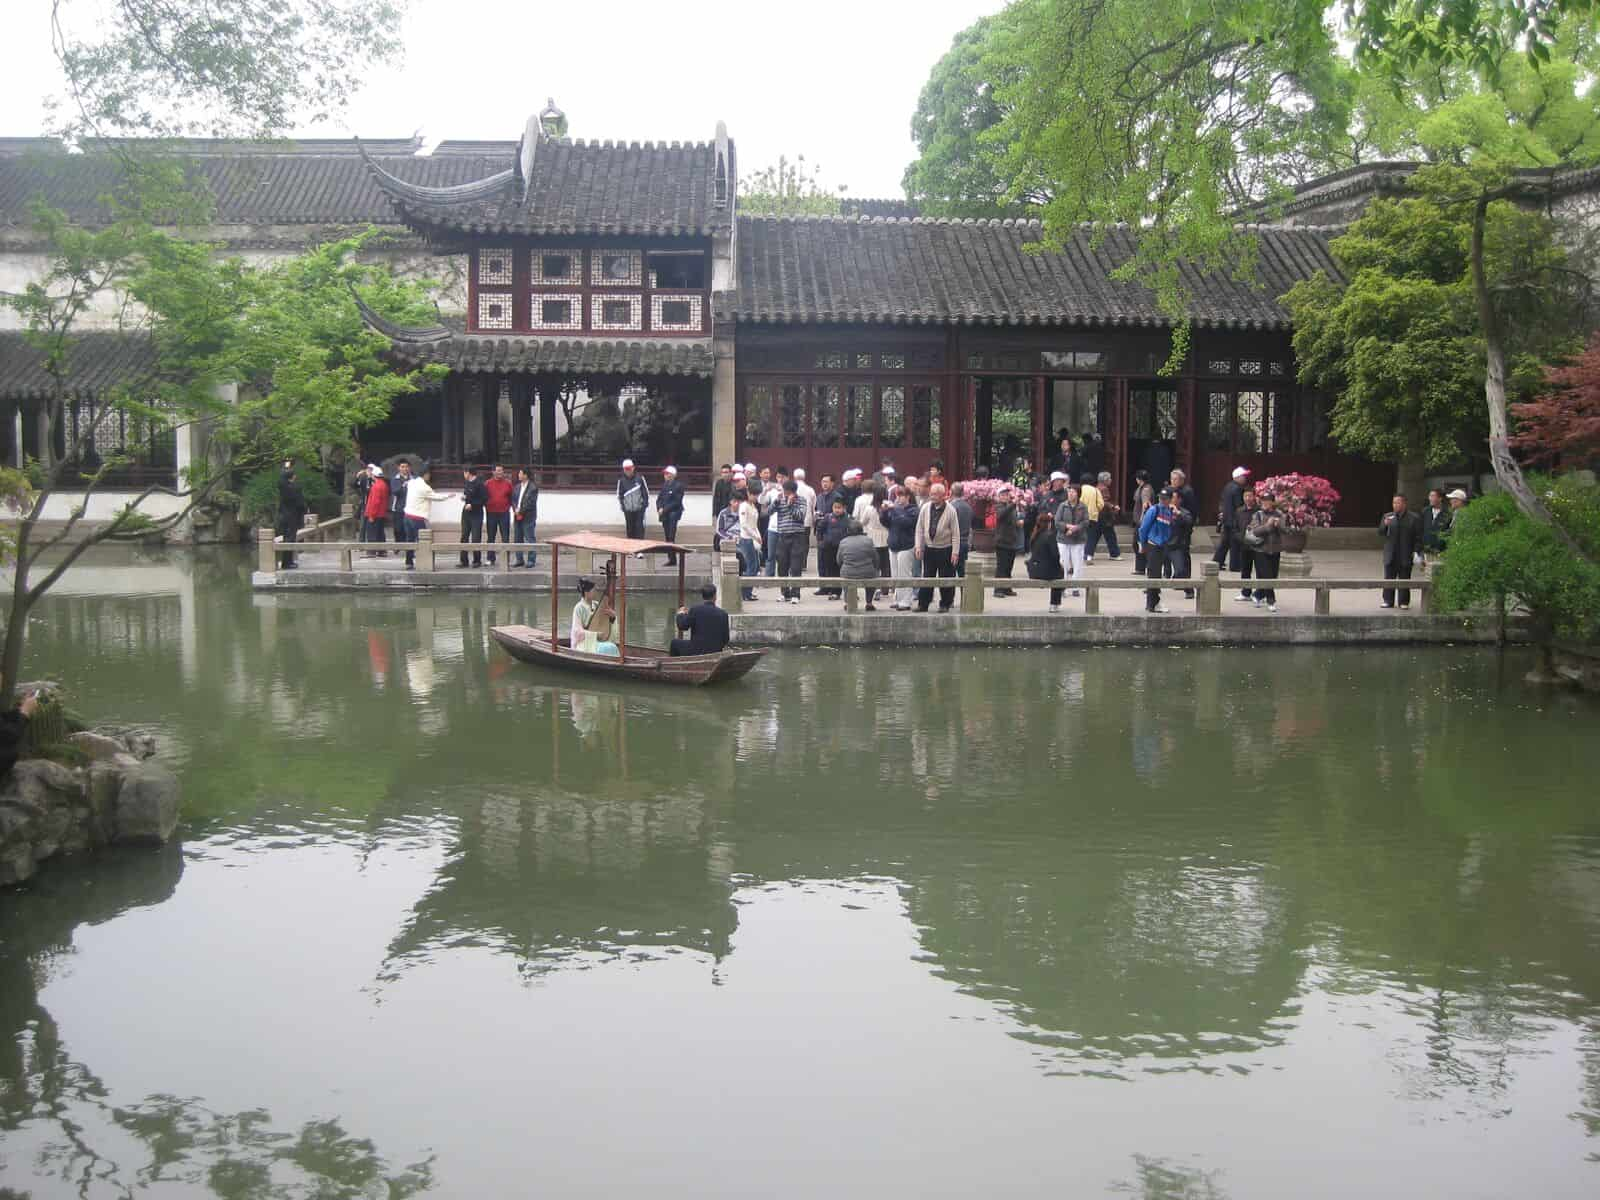 Visiting the Famous Gardens in China: Immerse Yourself in China's Culture by planning to see these Ancient Chinese Gardens!